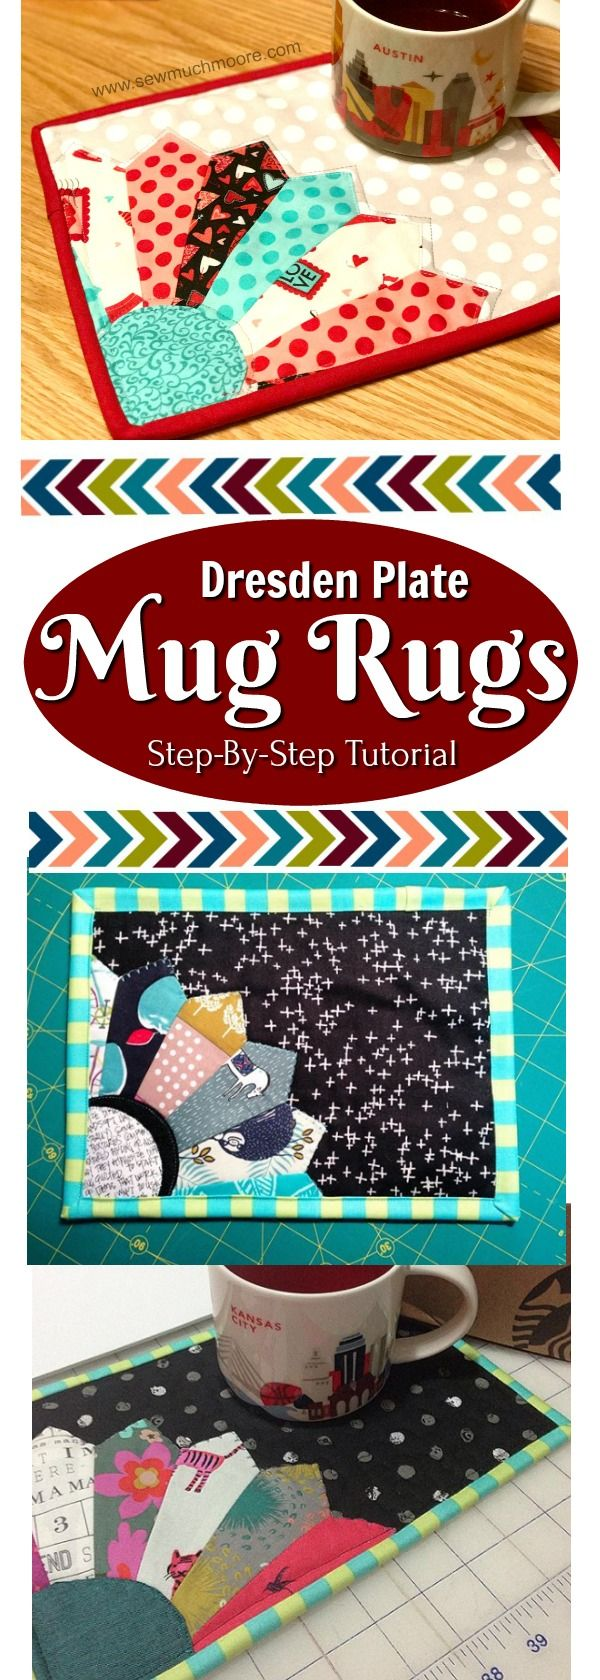 Make Your Own Scrappy Dresden Plate Mug Rug Use Scraps Or Get Some Cute Charm Packs And DIY Check Out This Step By Tutorial